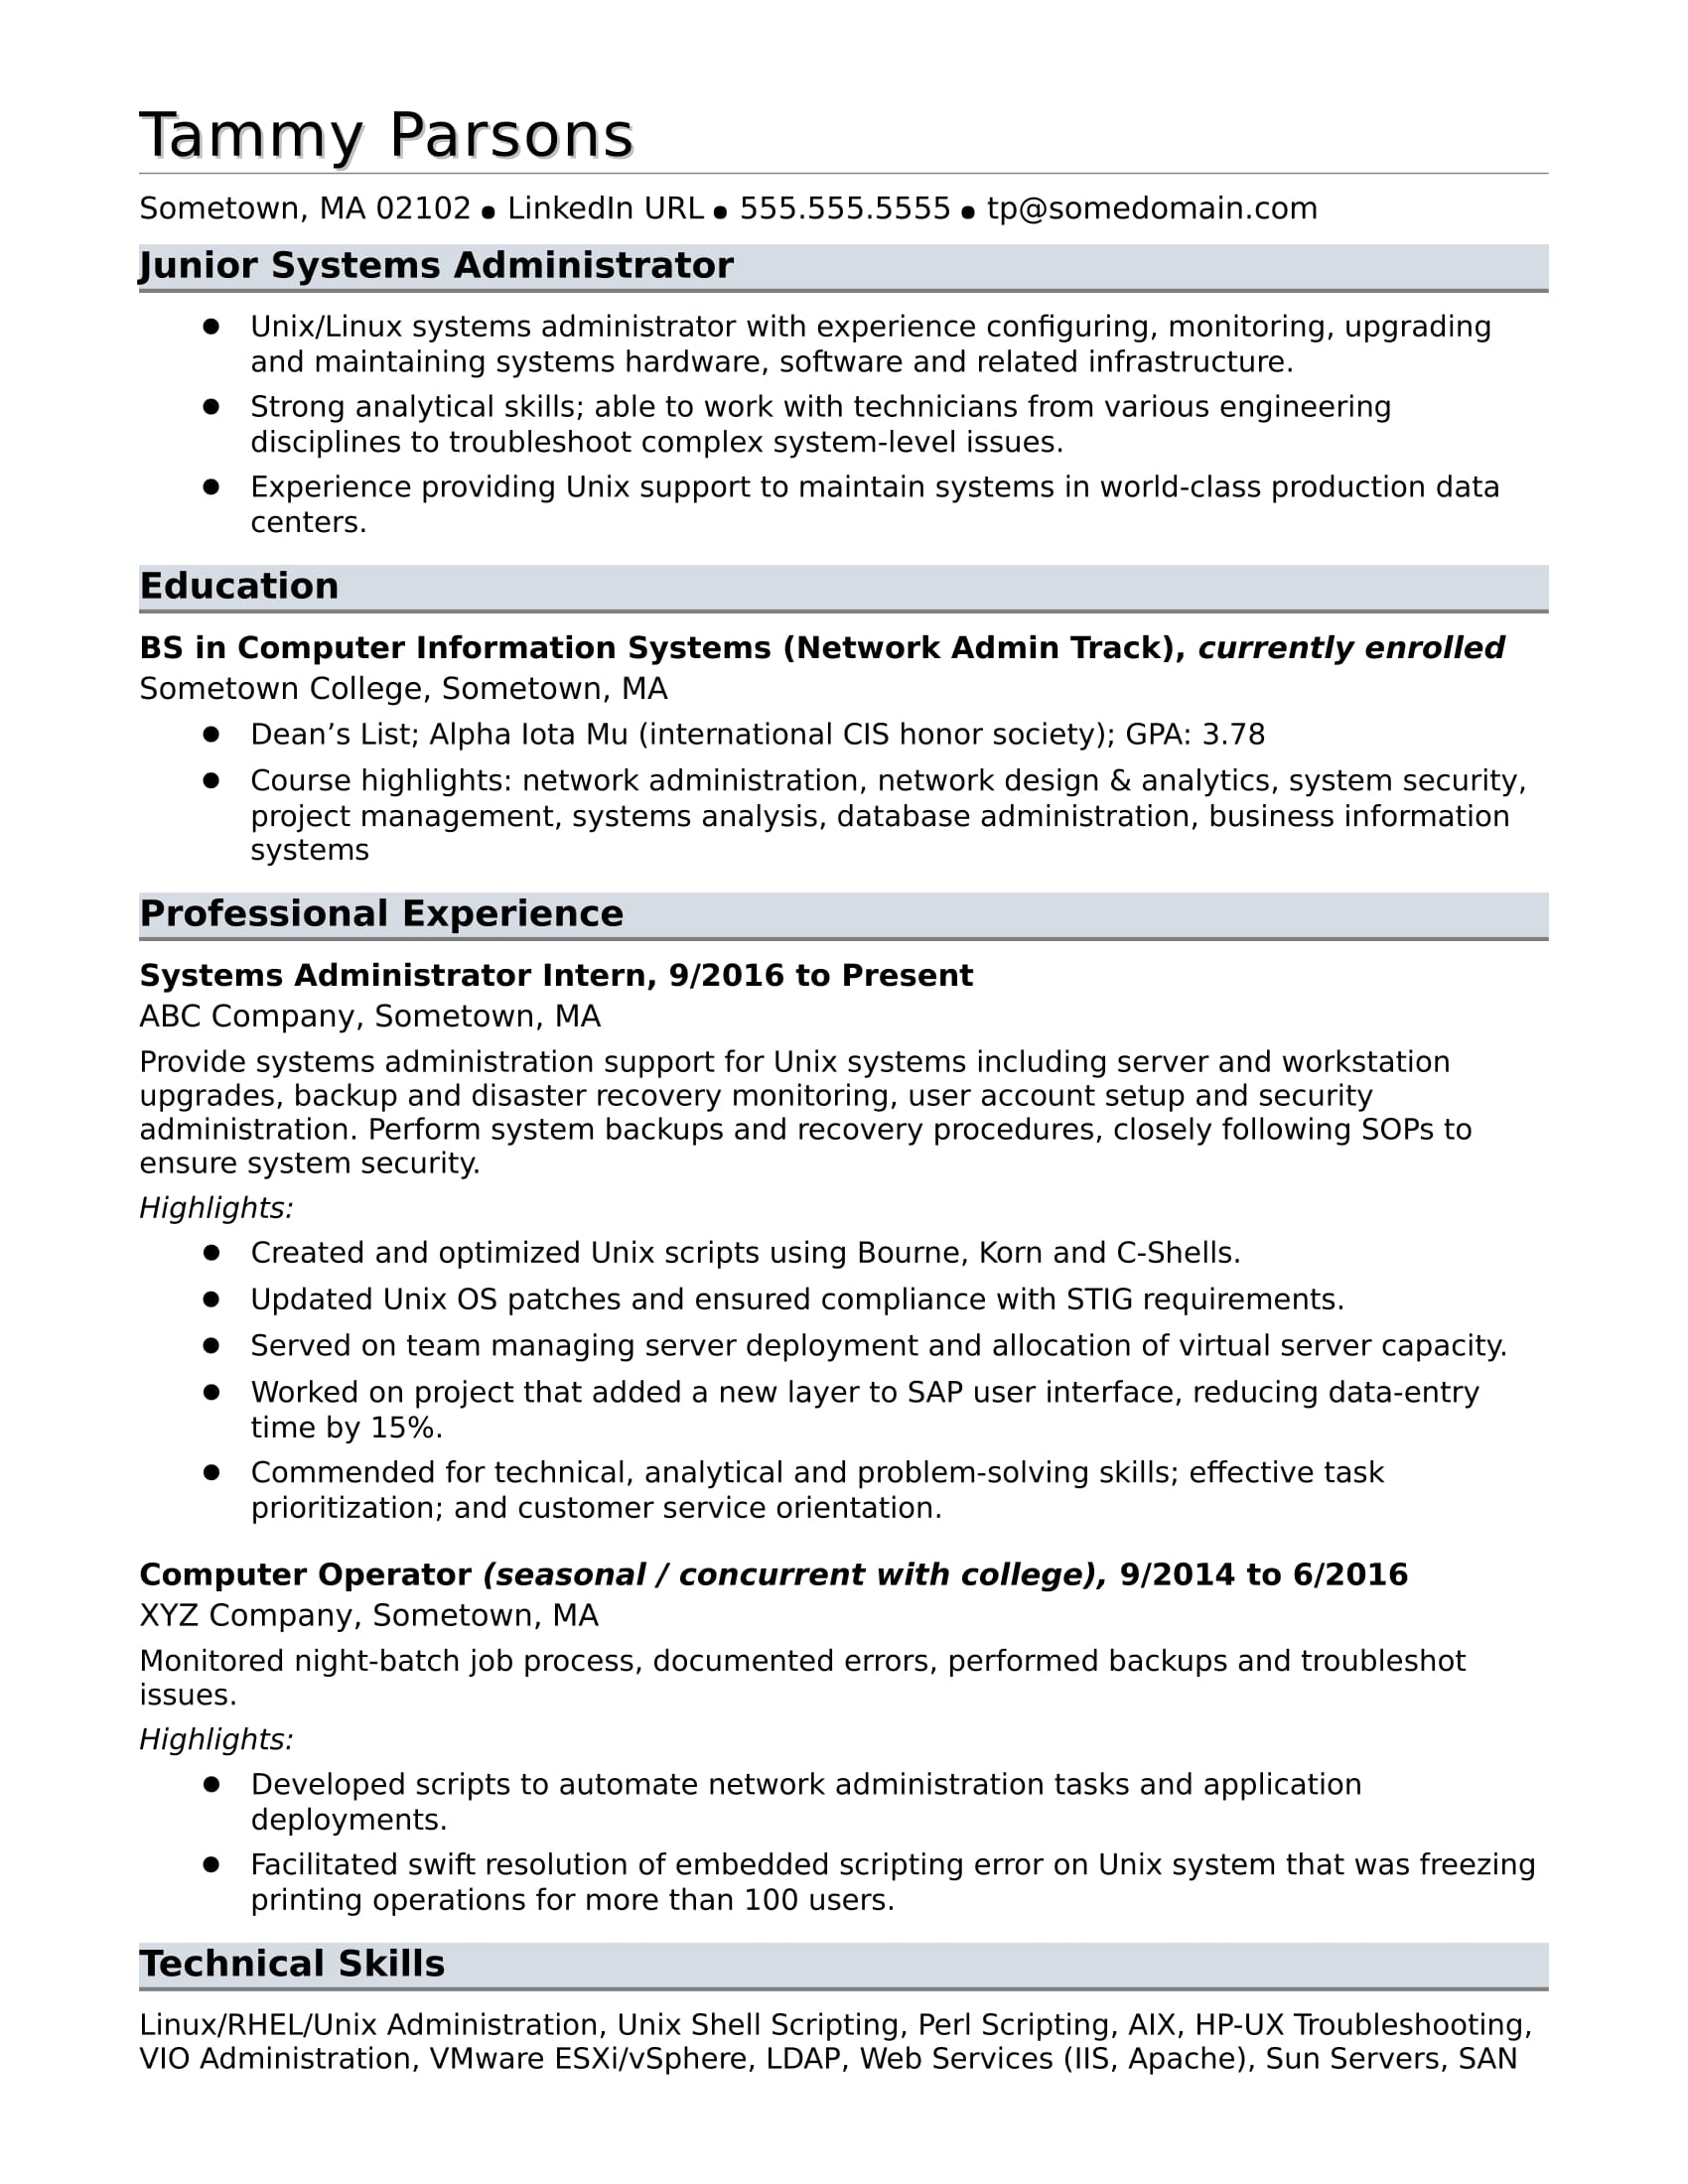 sample resume for an entry level systems administrator junior network administrator resume